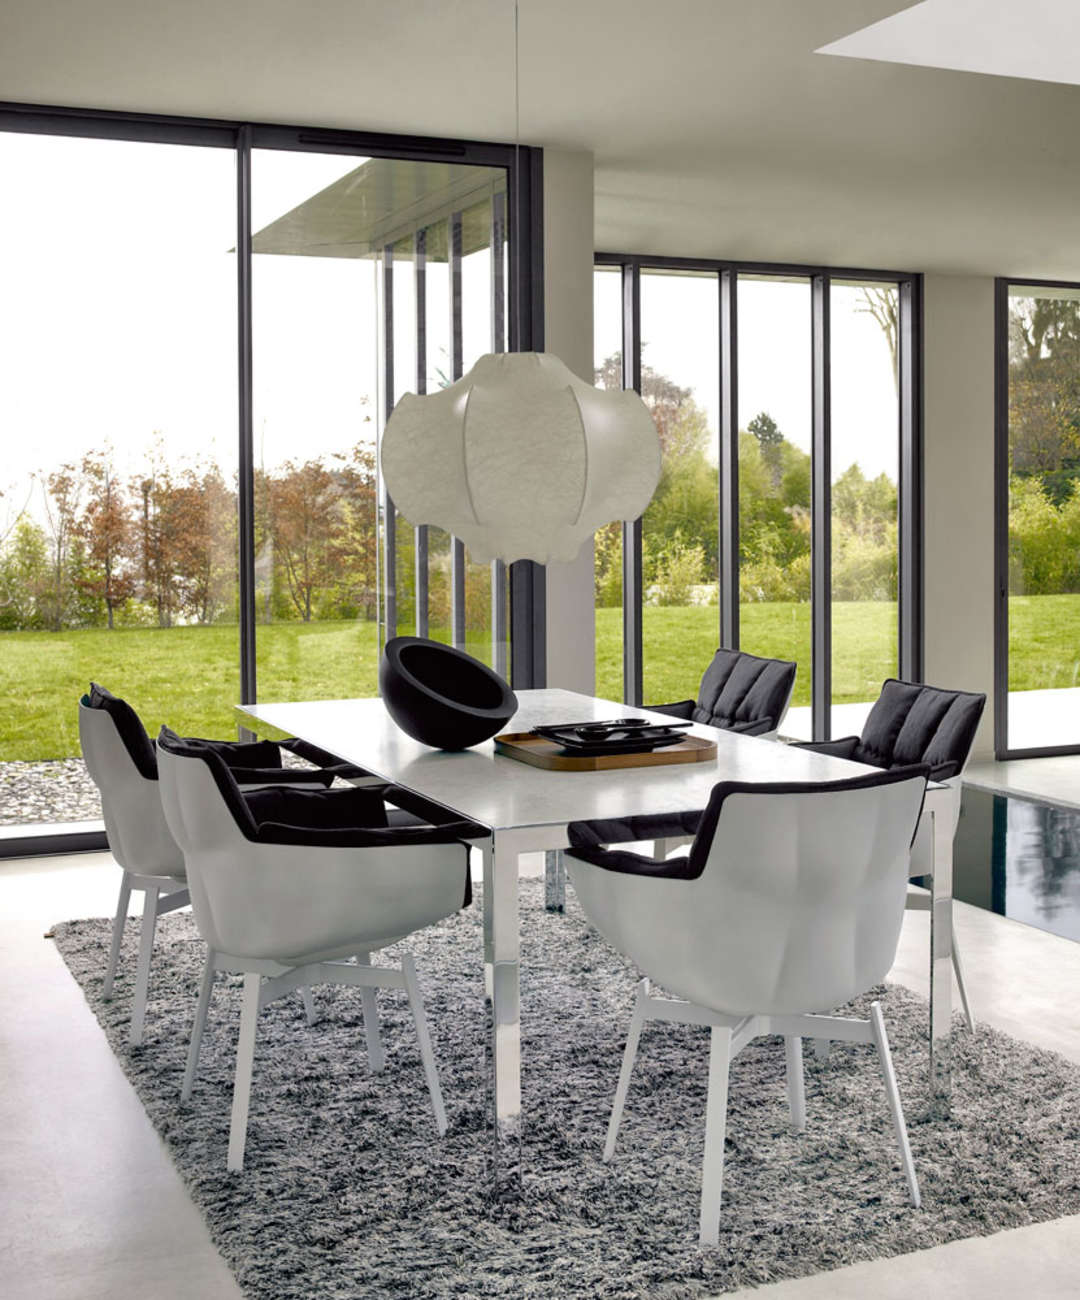 Decorating Ideas Dining Table Top 25 Of Amazing Modern Dining Table Decorating Ideas To Inspire You